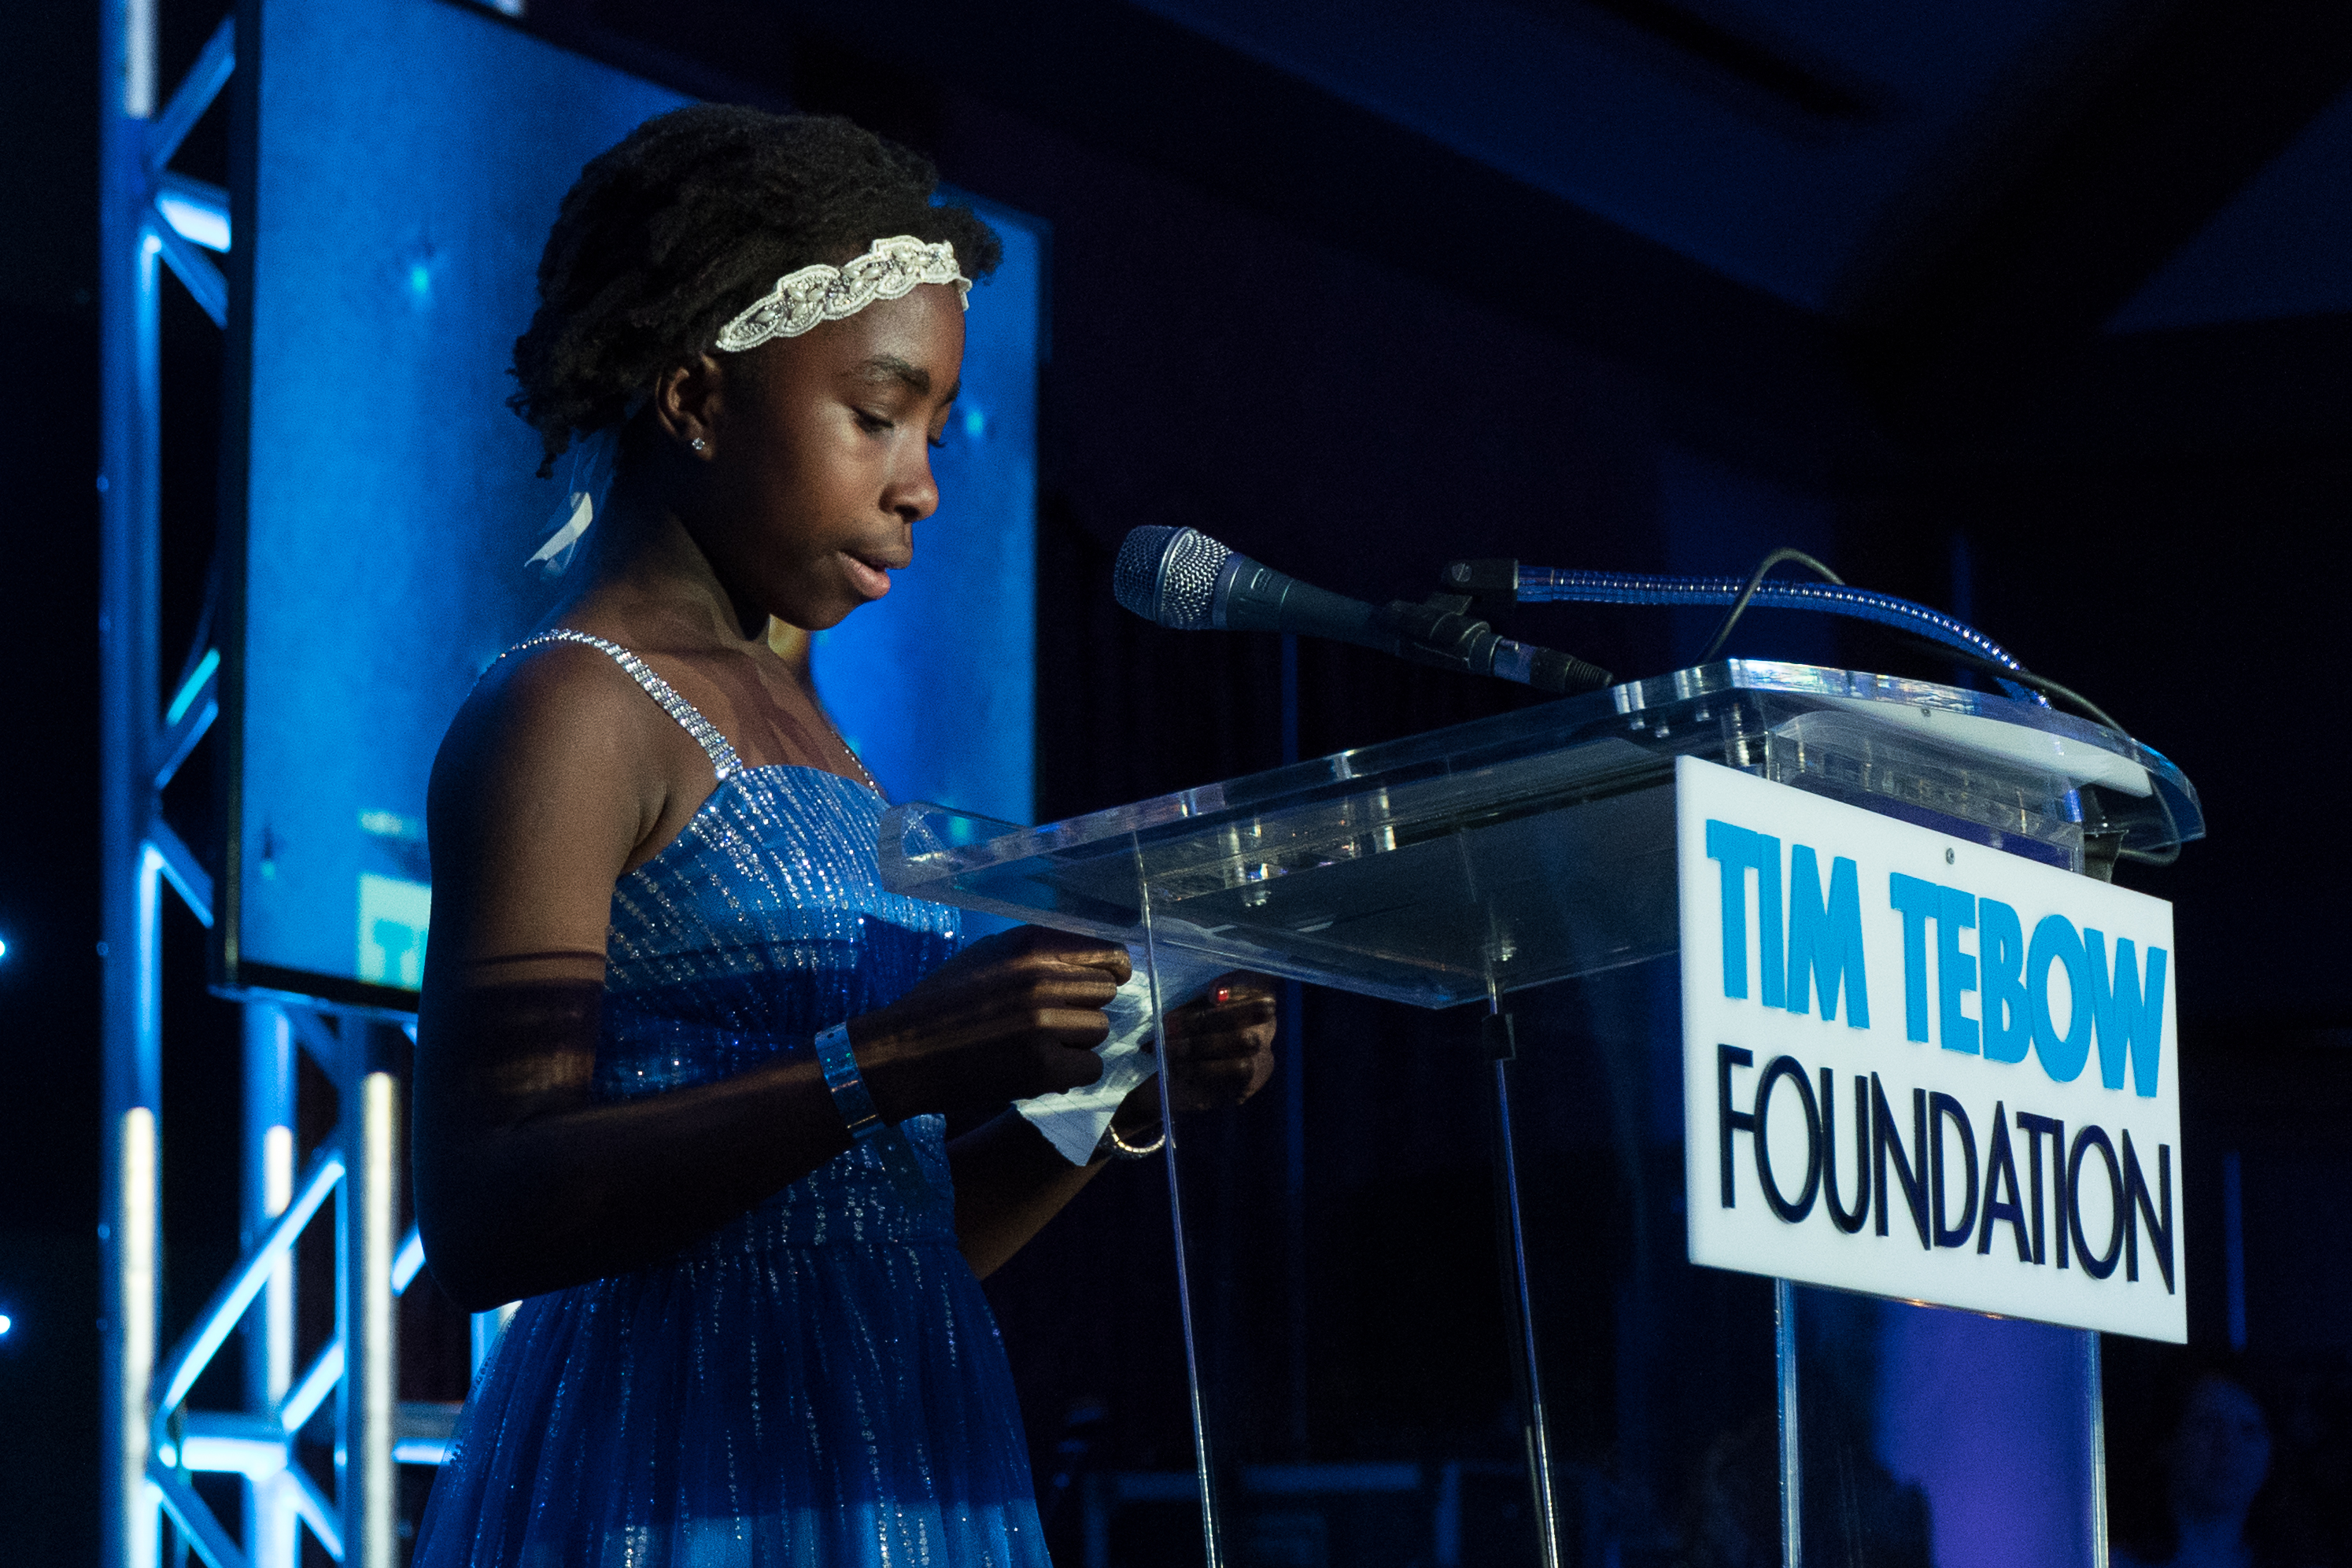 Jada_Richardson_opens_the_Gala_in_prayer.jpg